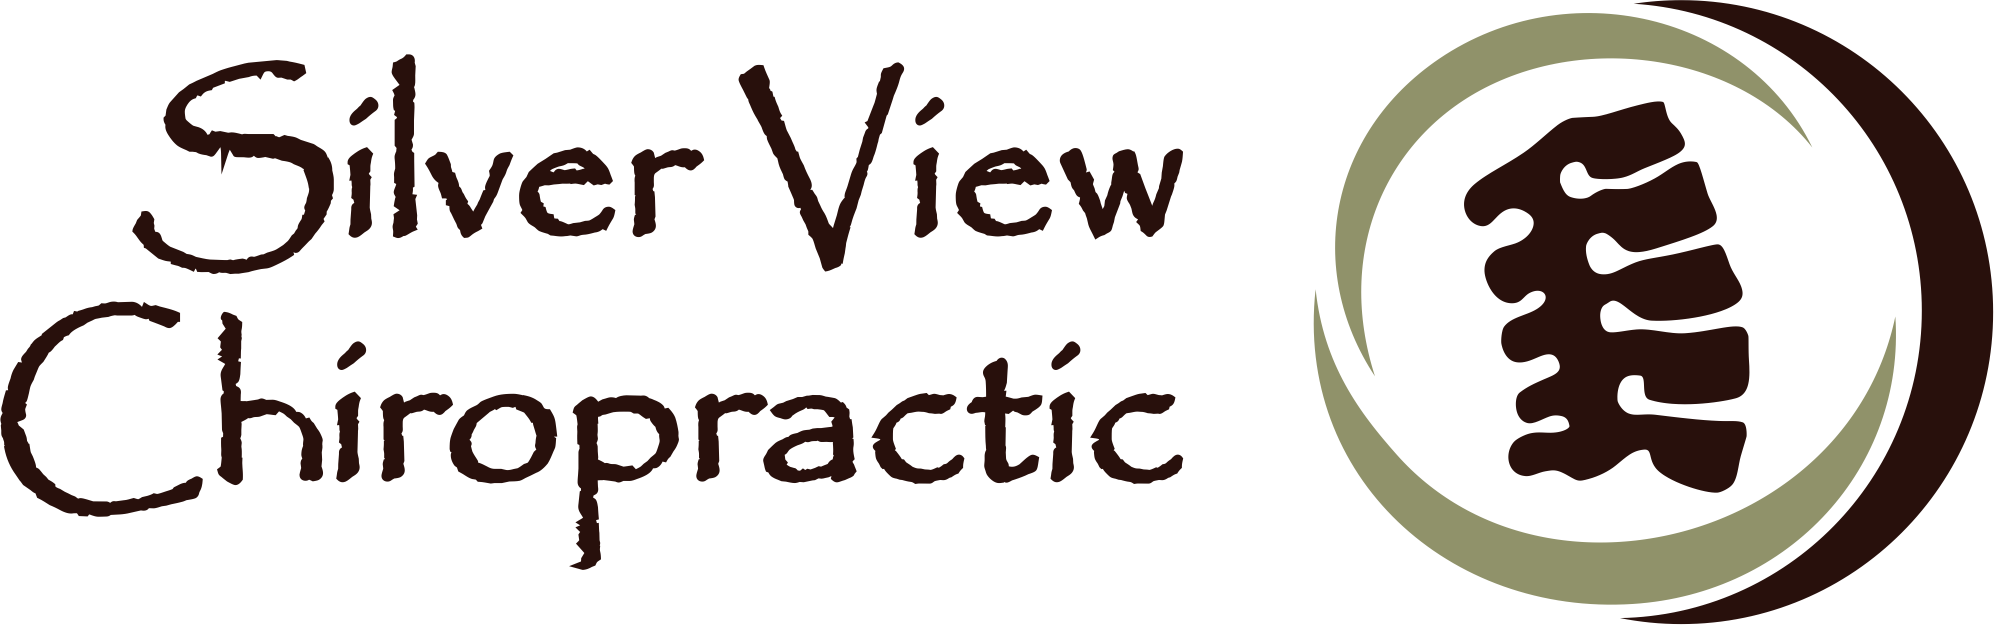 Silver View Chiropractic Center